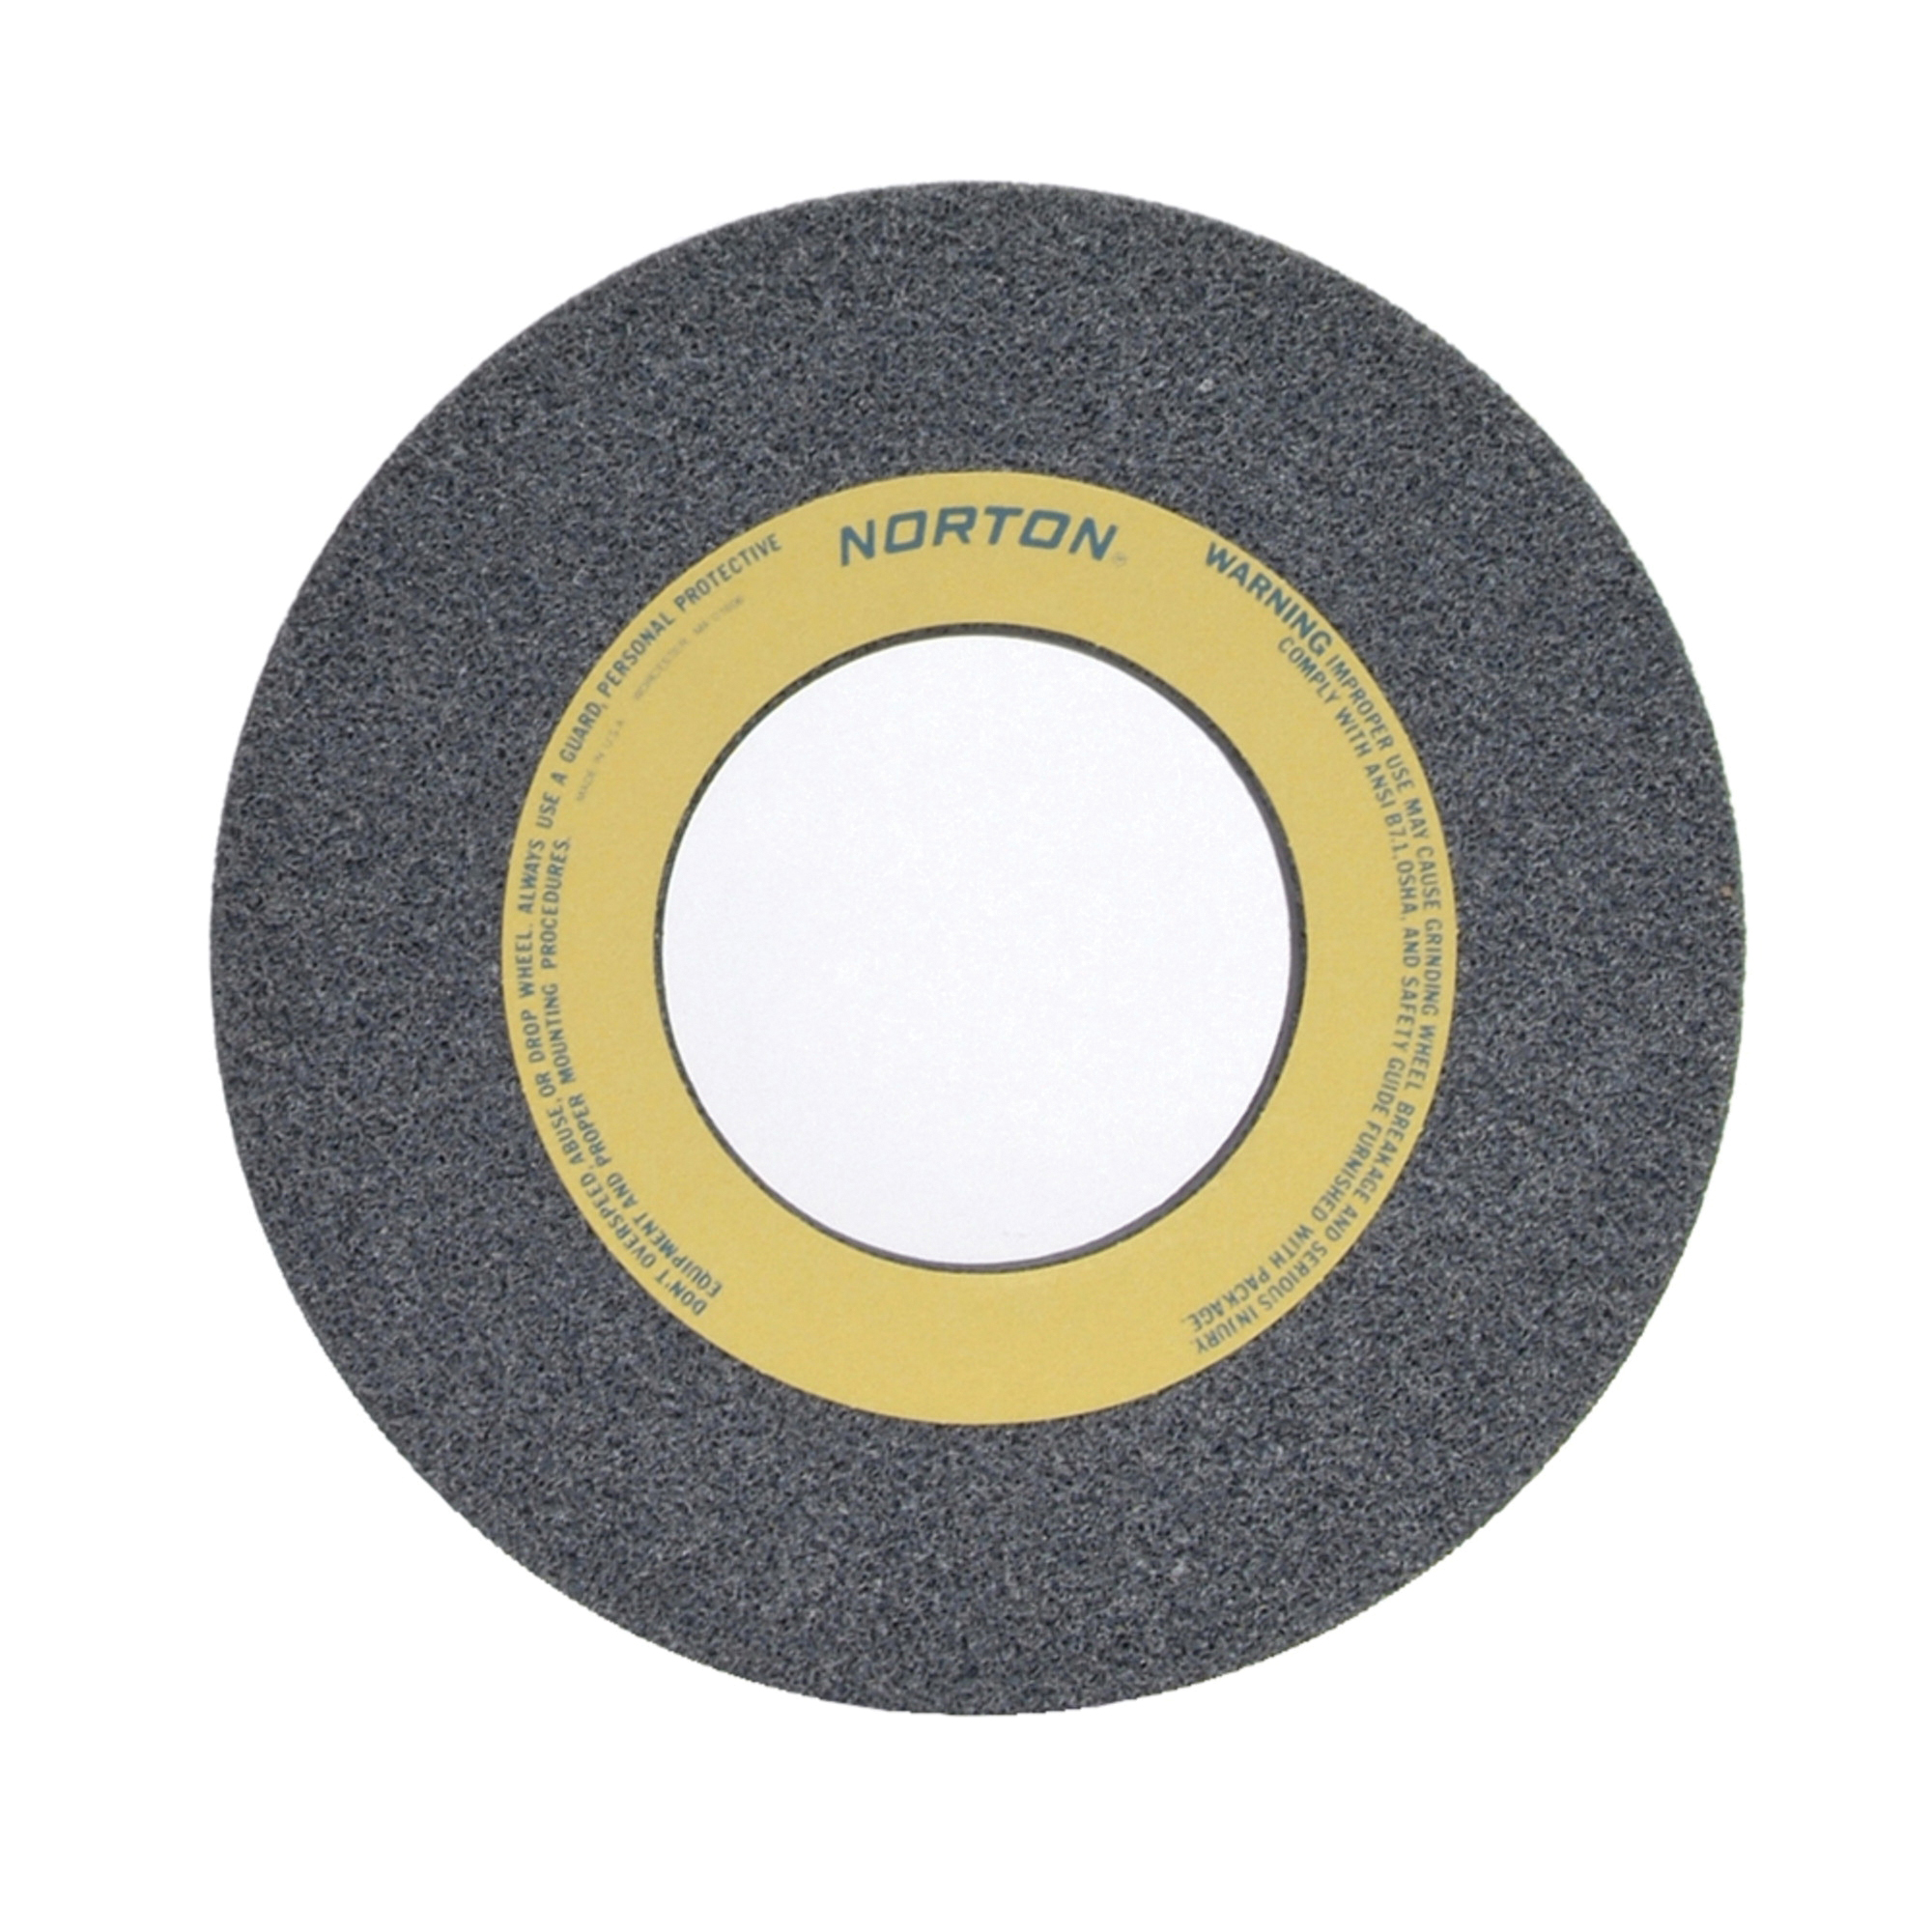 Norton® 66253263034 32A Straight Toolroom Wheel, 12 in Dia x 1-1/2 in THK, 5 in Center Hole, 60 Grit, Aluminum Oxide Abrasive